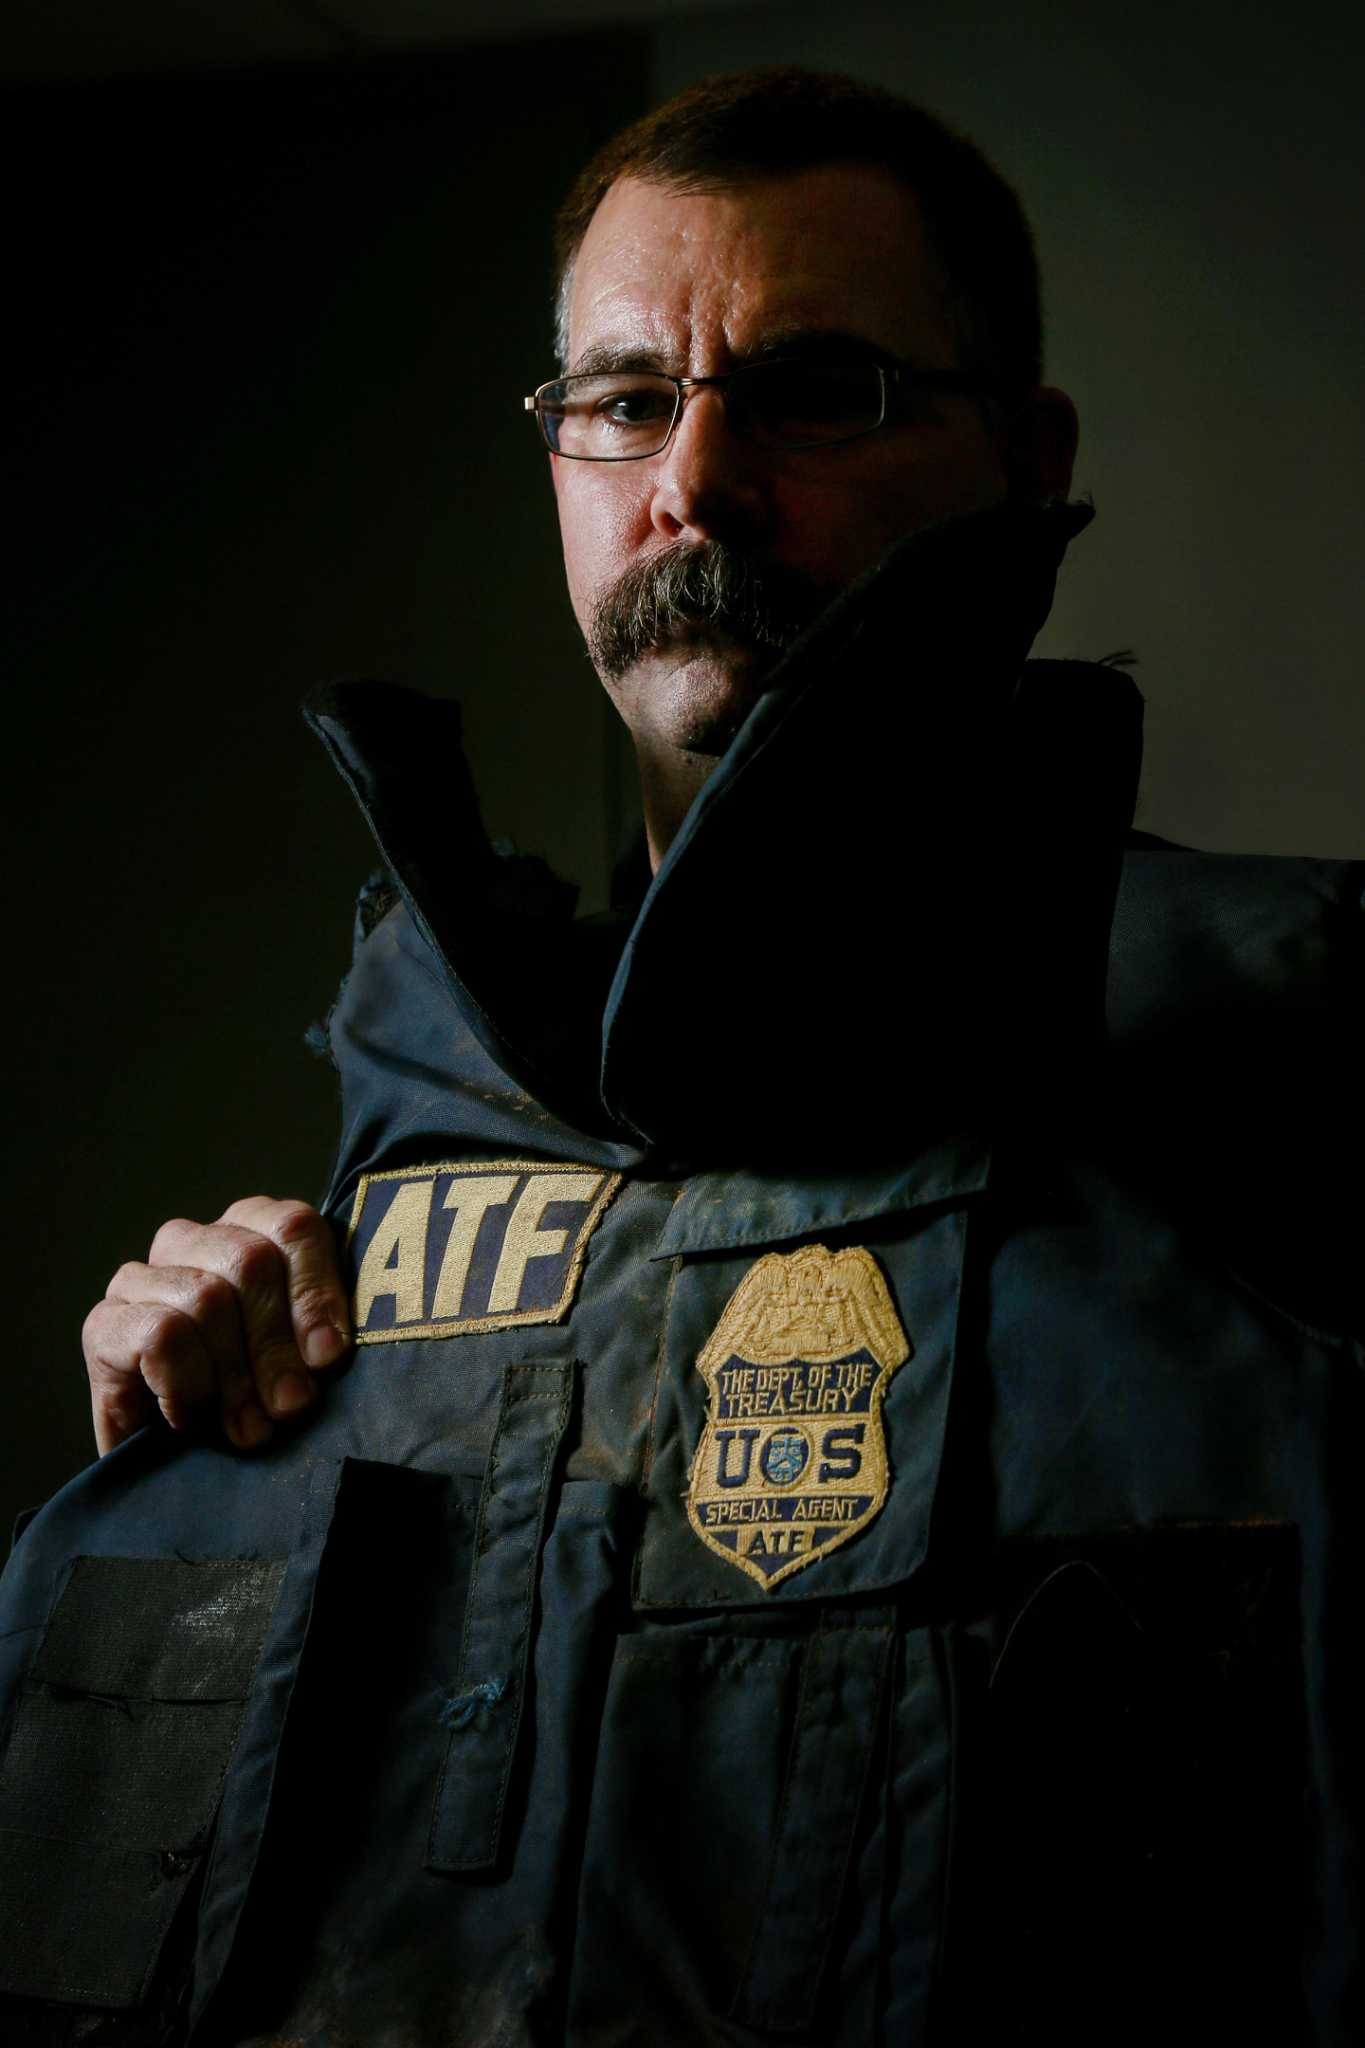 Atf Agents Share Long Shrouded Details About Branch